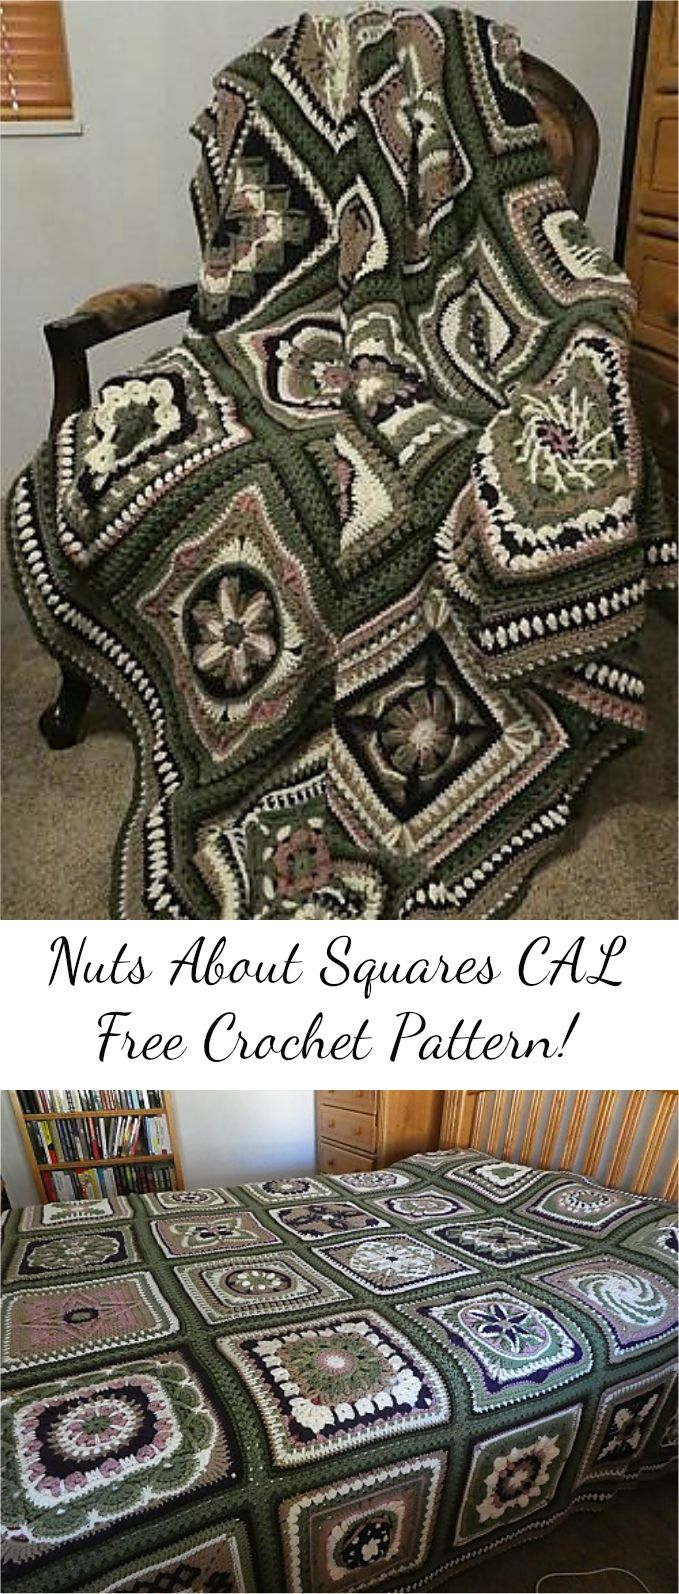 [Free Pattern] Nuts About Squares CAL Free Crochet Pattern! Visit site and follow free crochet pattern & ...